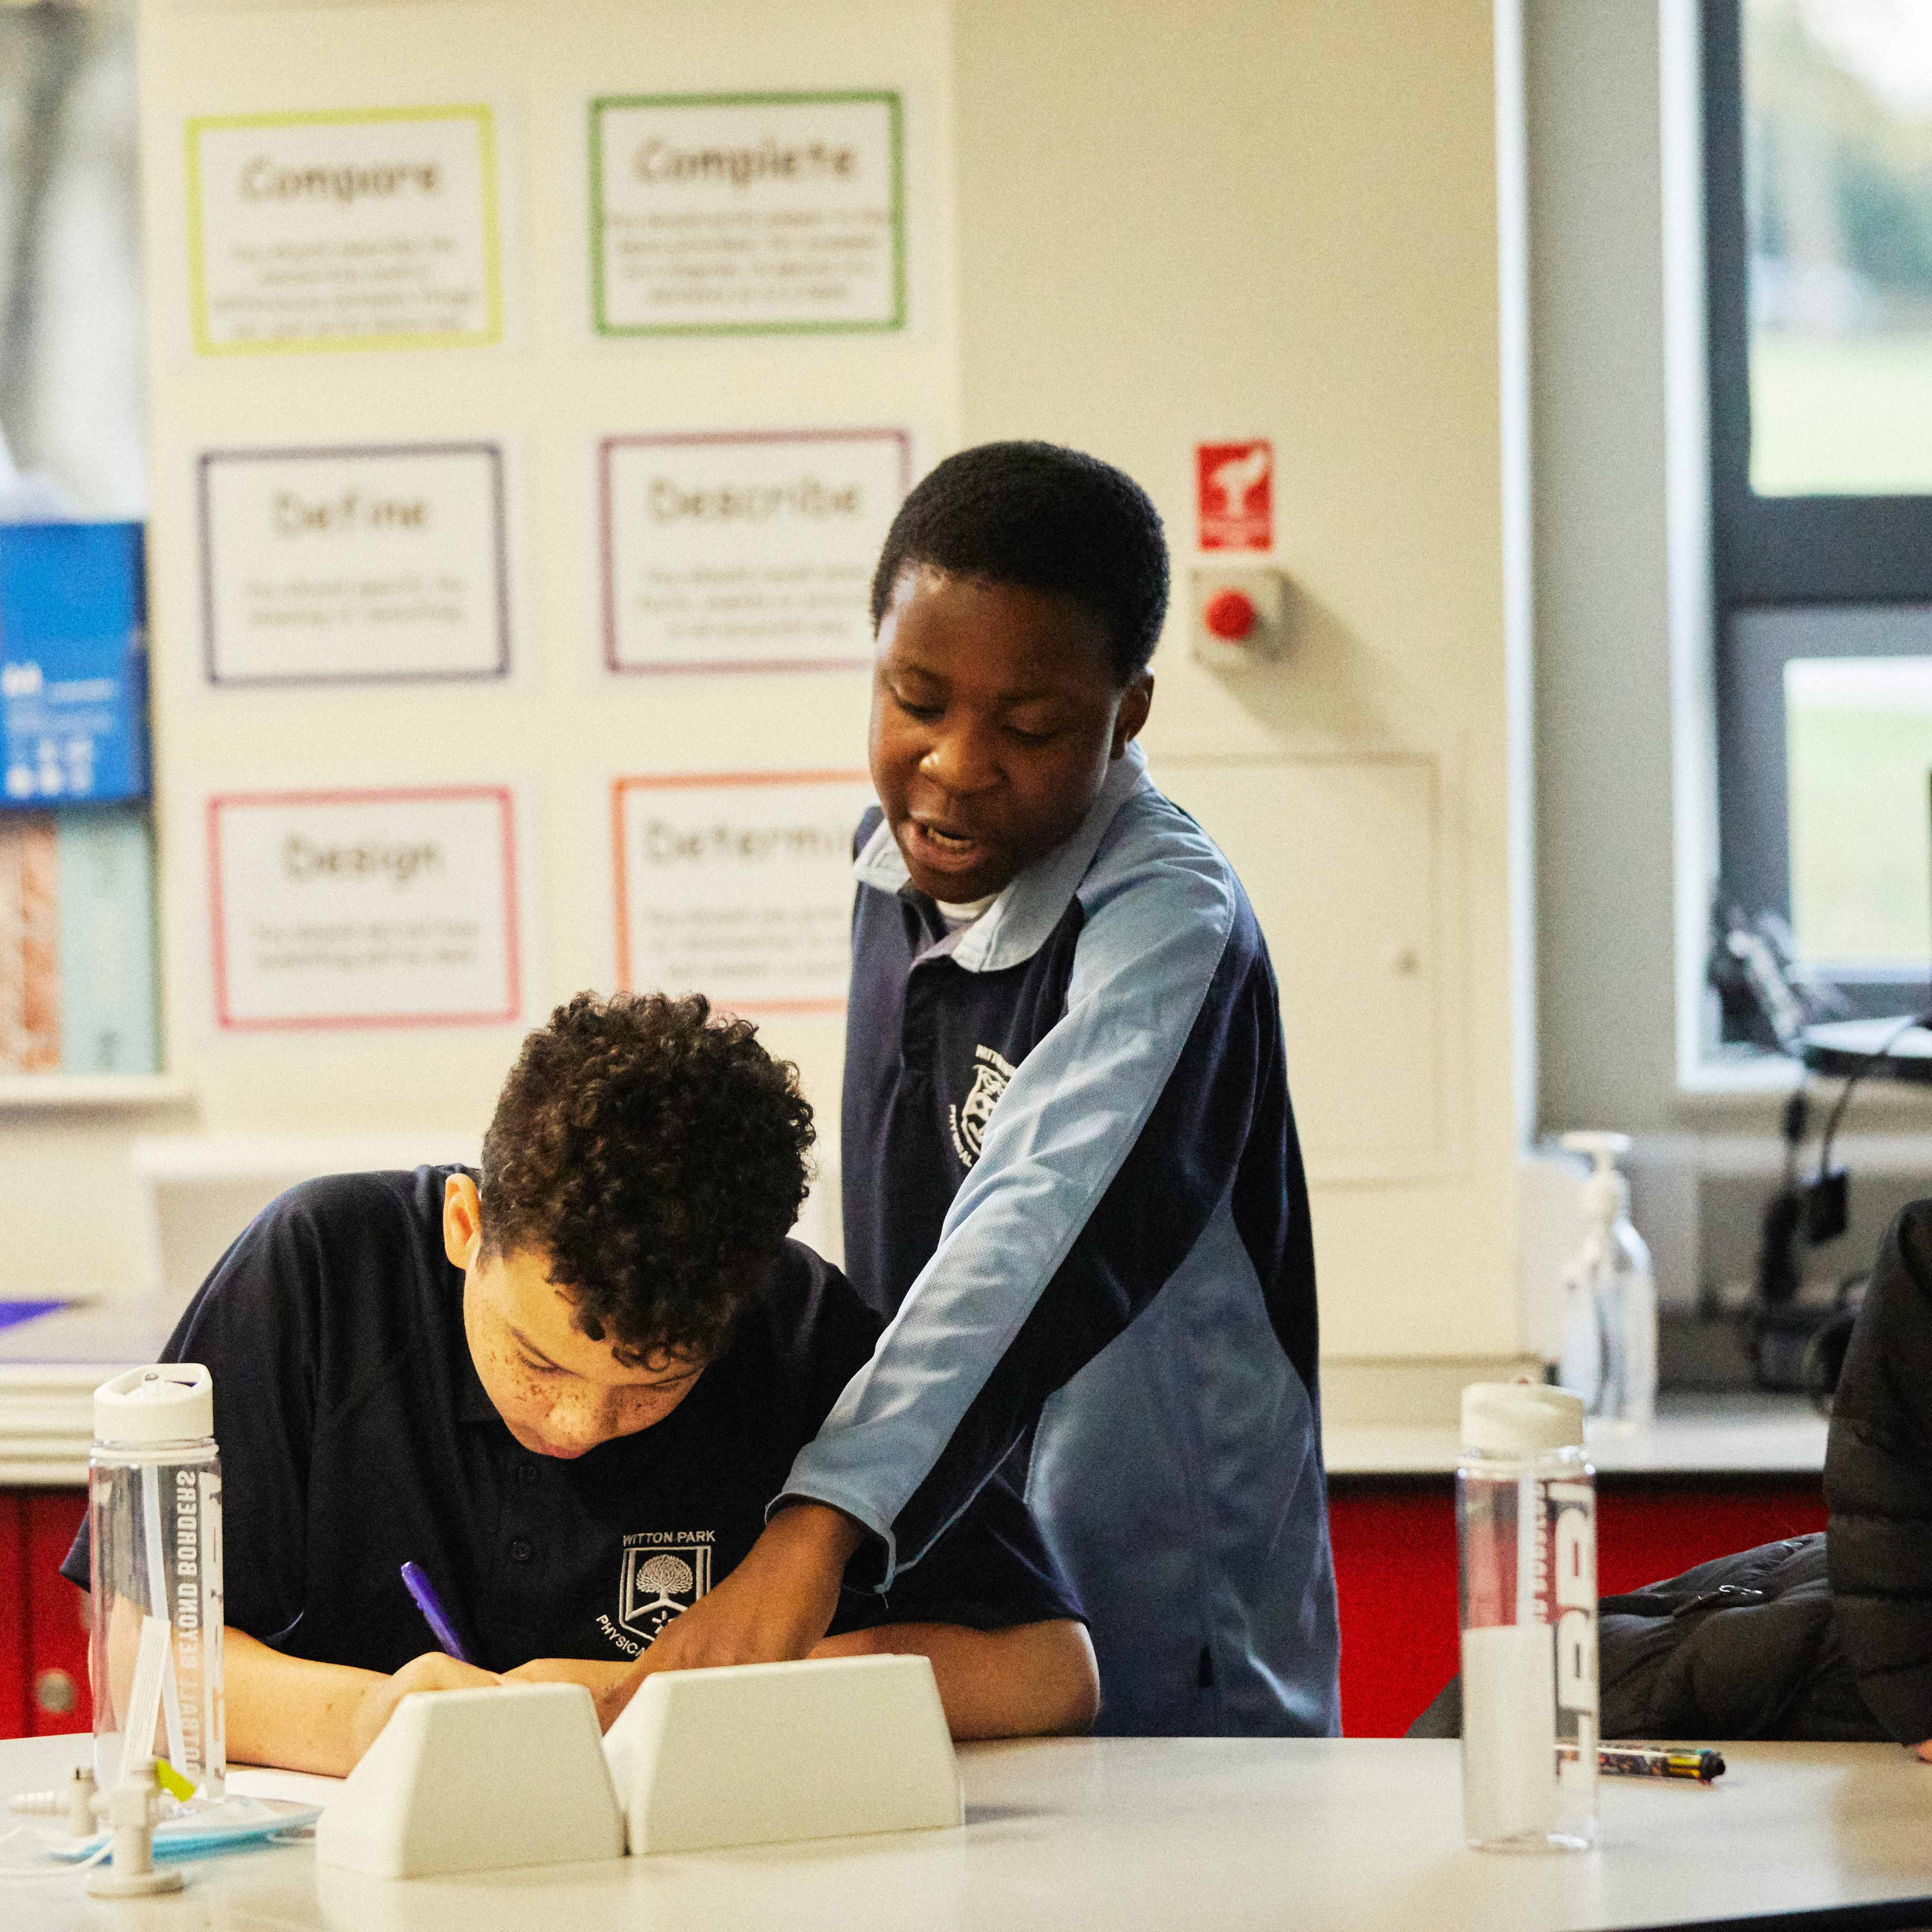 FBB students support each other in the classroom